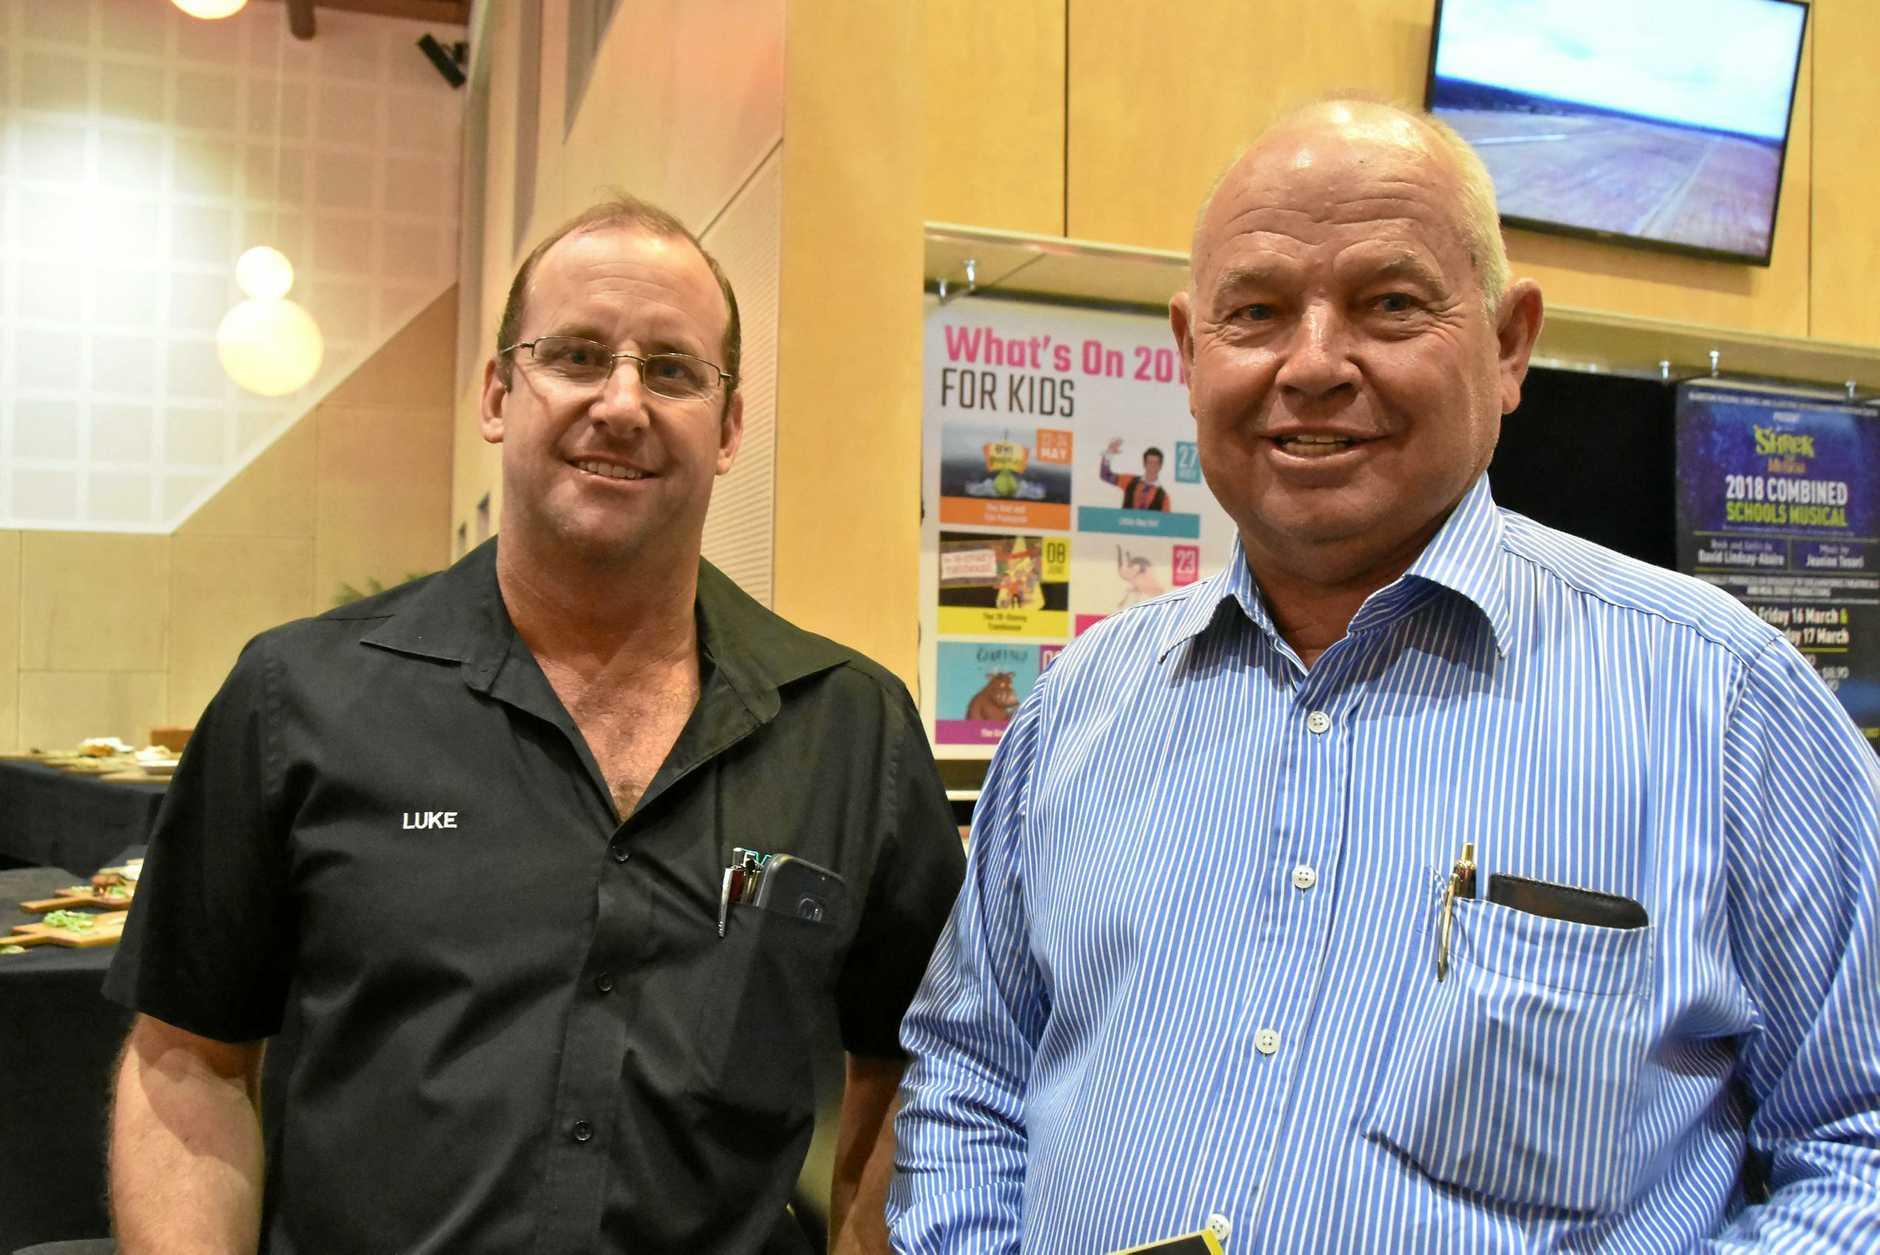 Levelin Civil owner Luke McAlpine and Rayment Excavations owner Ian Rayment at the information session   in Gladstone.